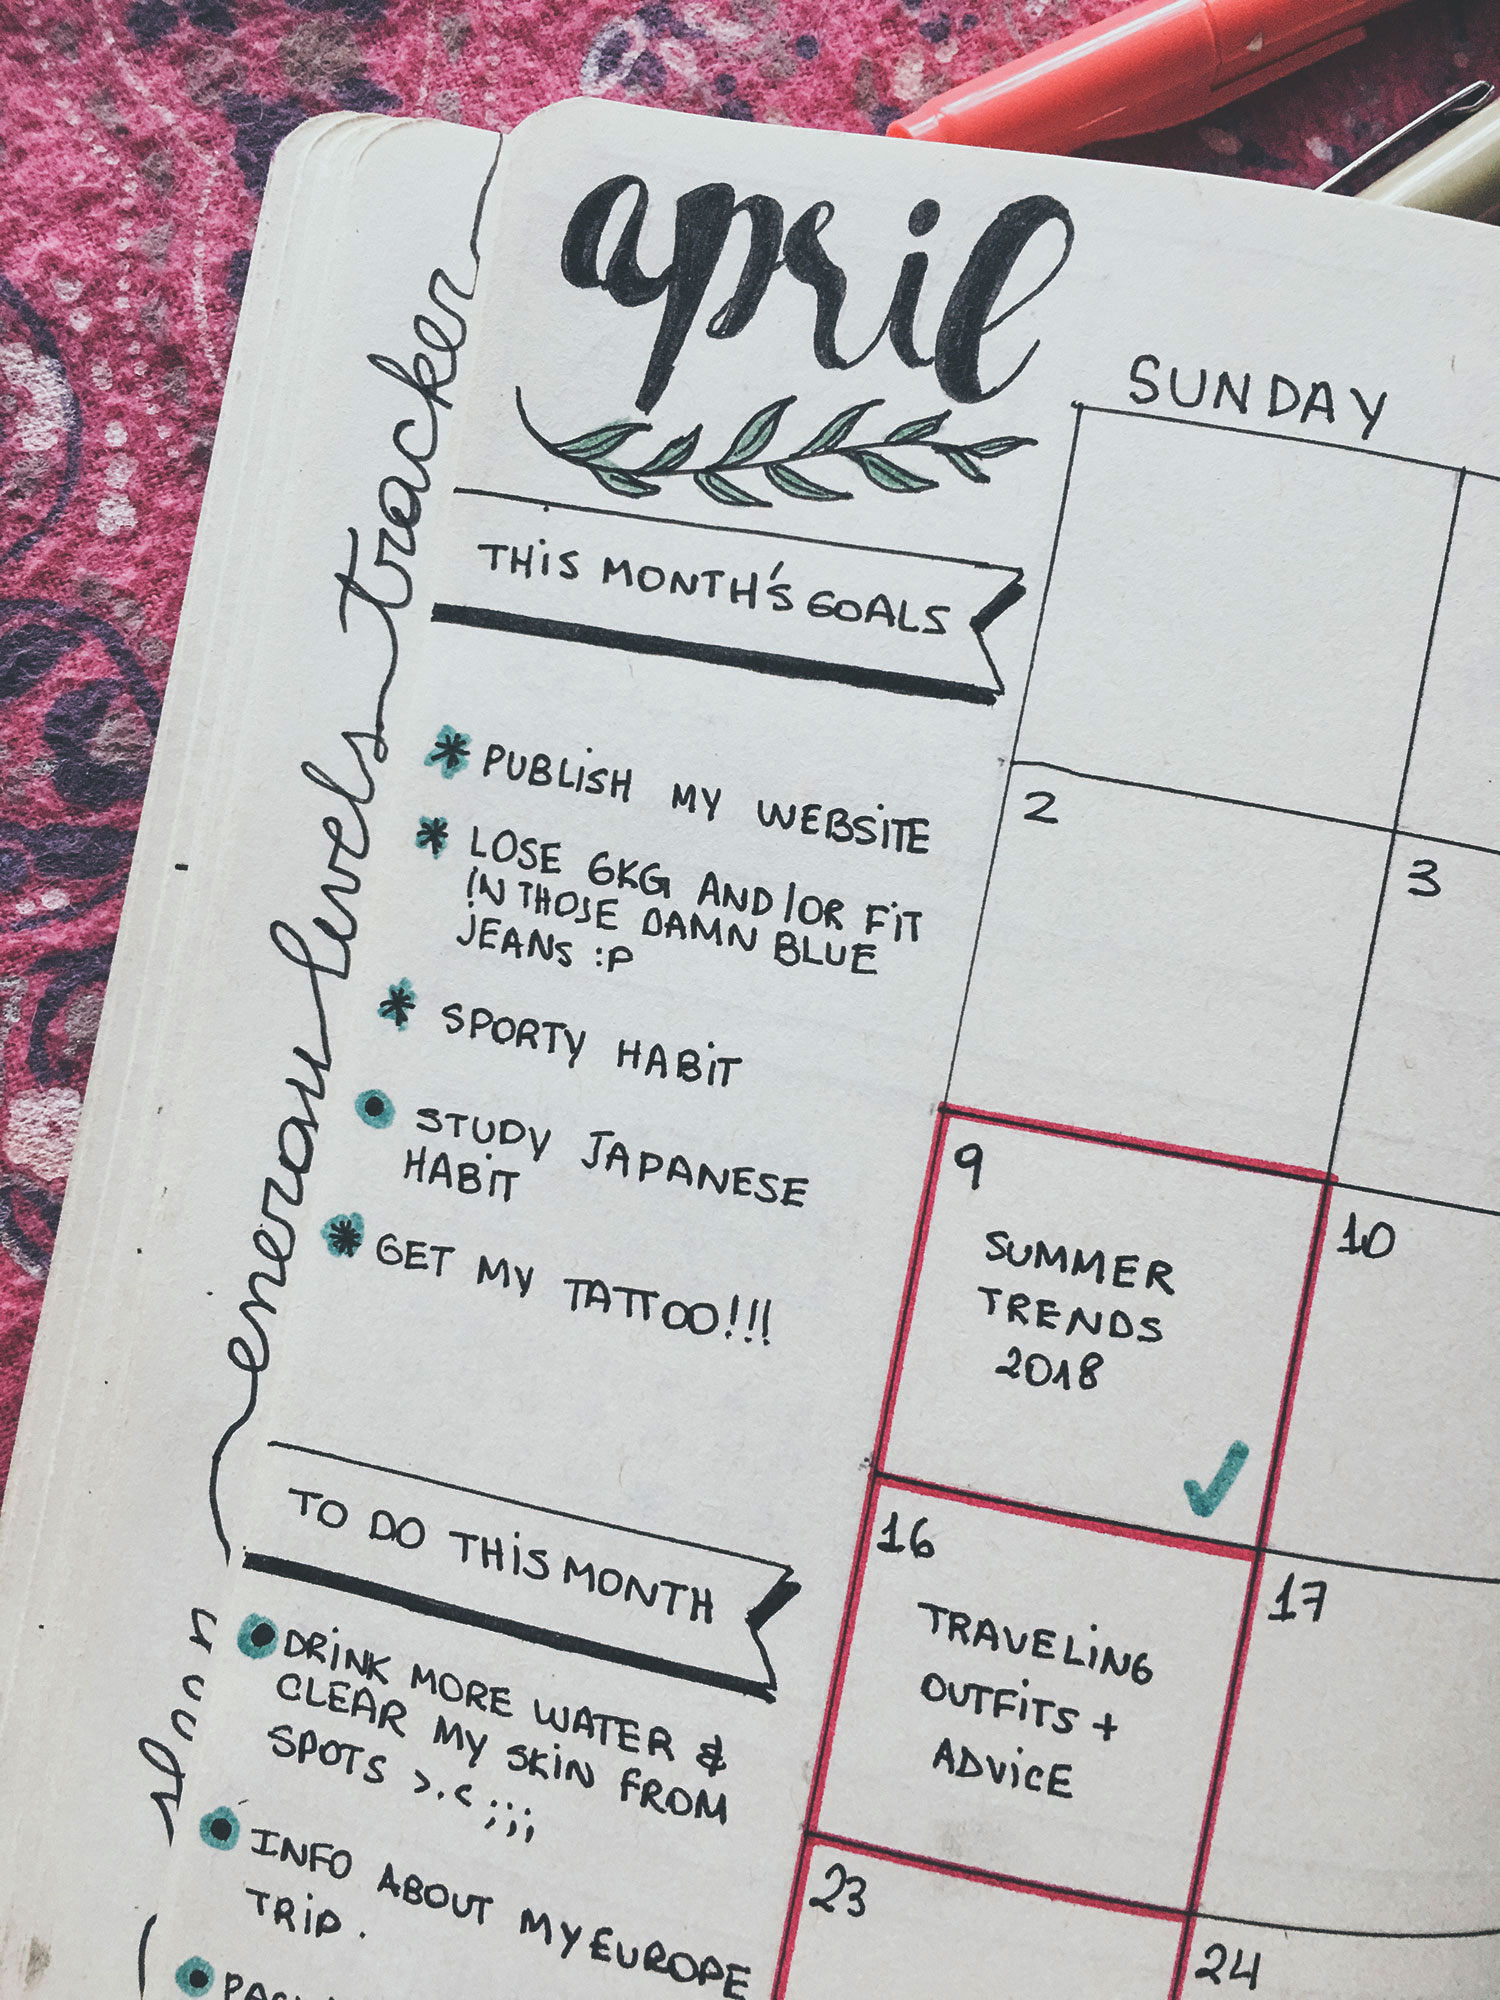 fashion, fashionista, moda, blogger argentina, fashion blogger, fashion blogger argentina, blogger, lifestyle blogger, bujo, bullet journal, agenda, planner addict